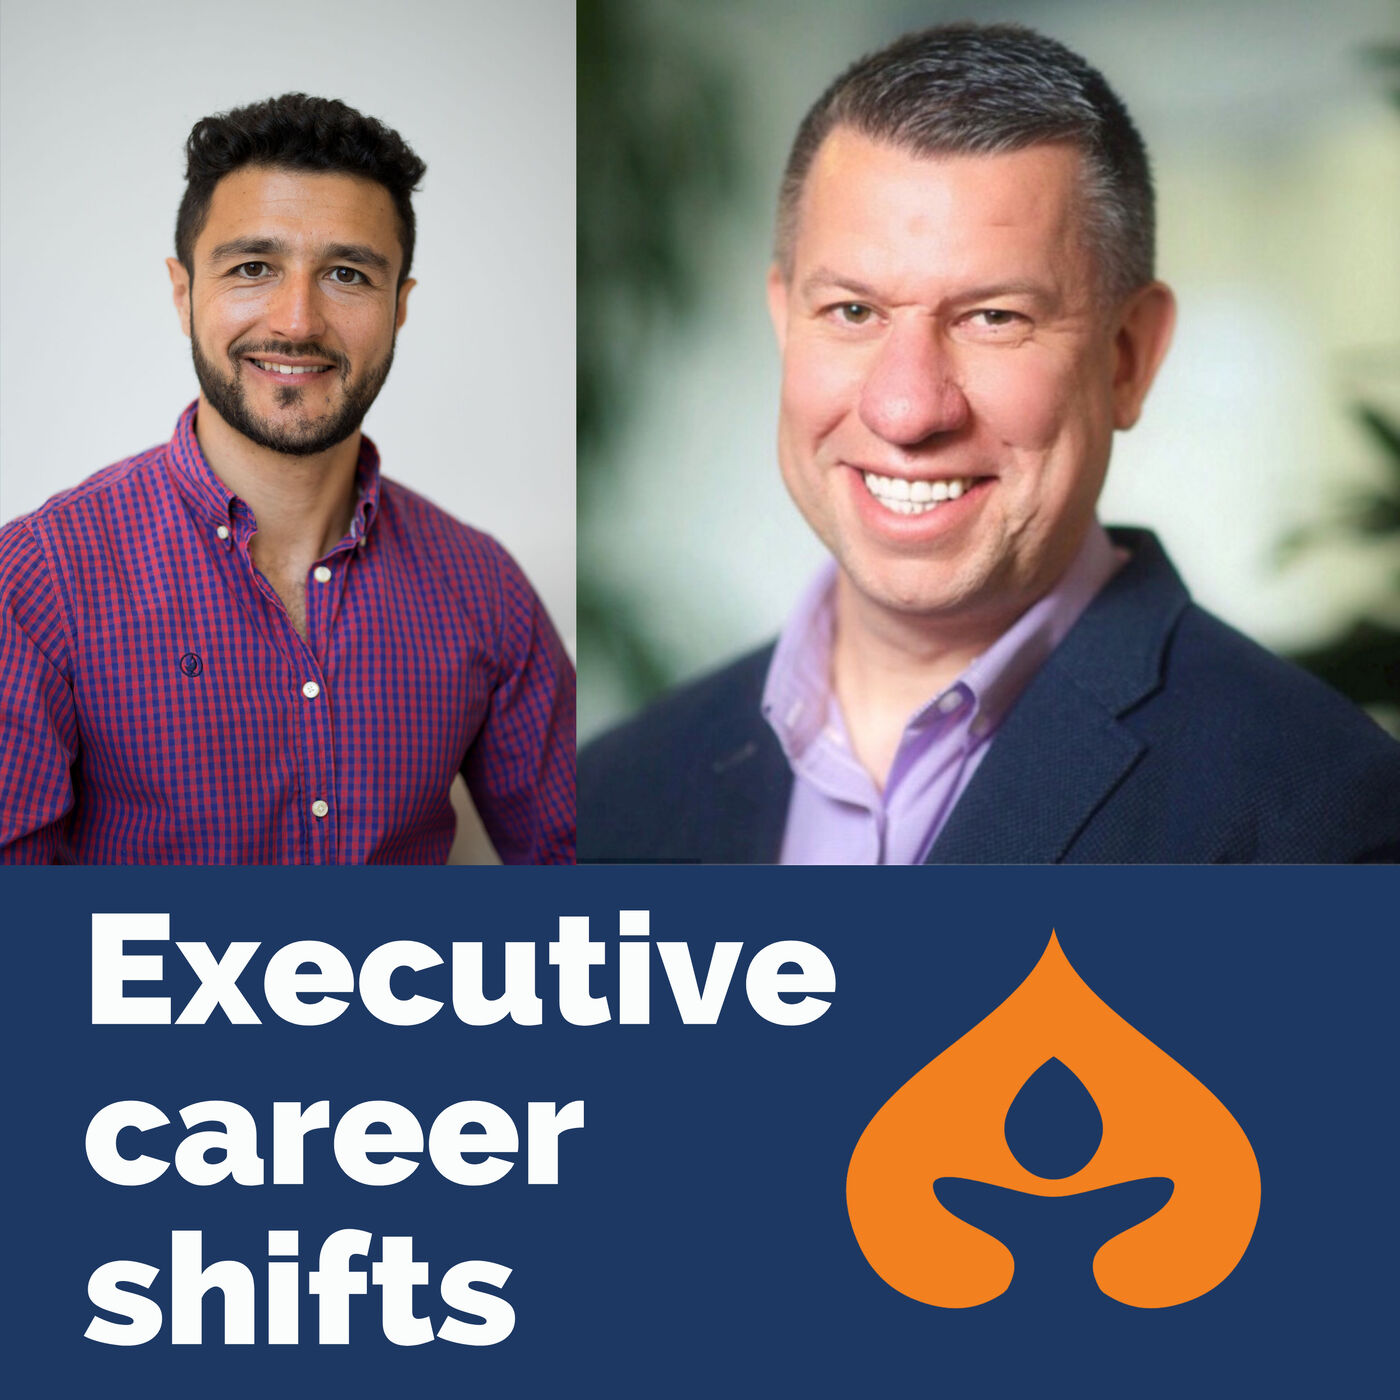 An expert's perspective on executive career and lifestyle change - George McGehrin